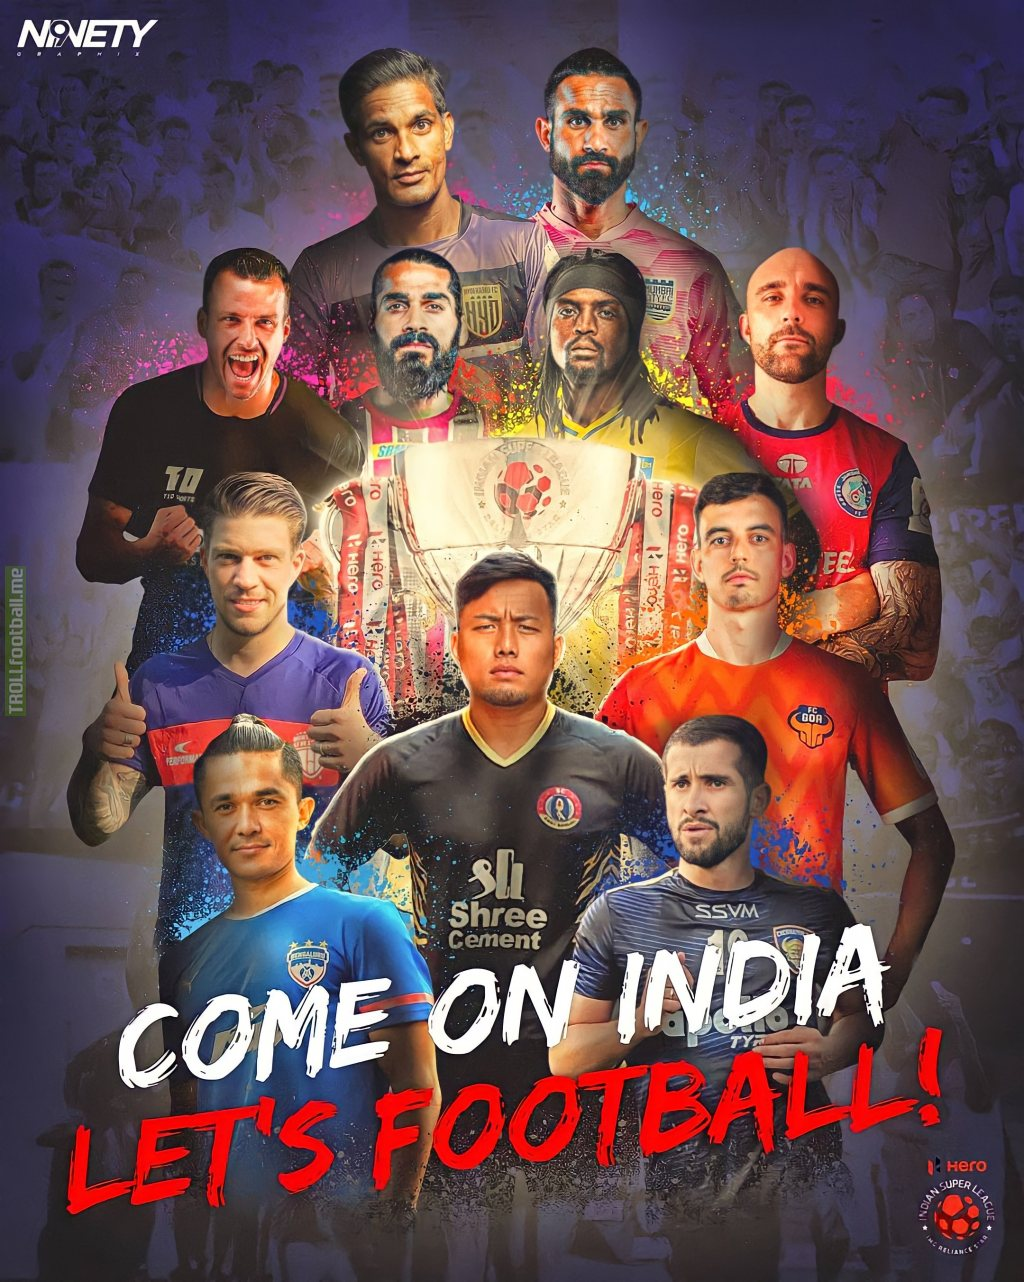 Indian Super League (ISL) starts today at 7:30 pm IST (2:00 pm GMT). The start of a season like no other! The most unique & the biggest thus far. This season promises to take Indian Football to a new direction. Hoping that the fans support ISL. Indian Football needs it.